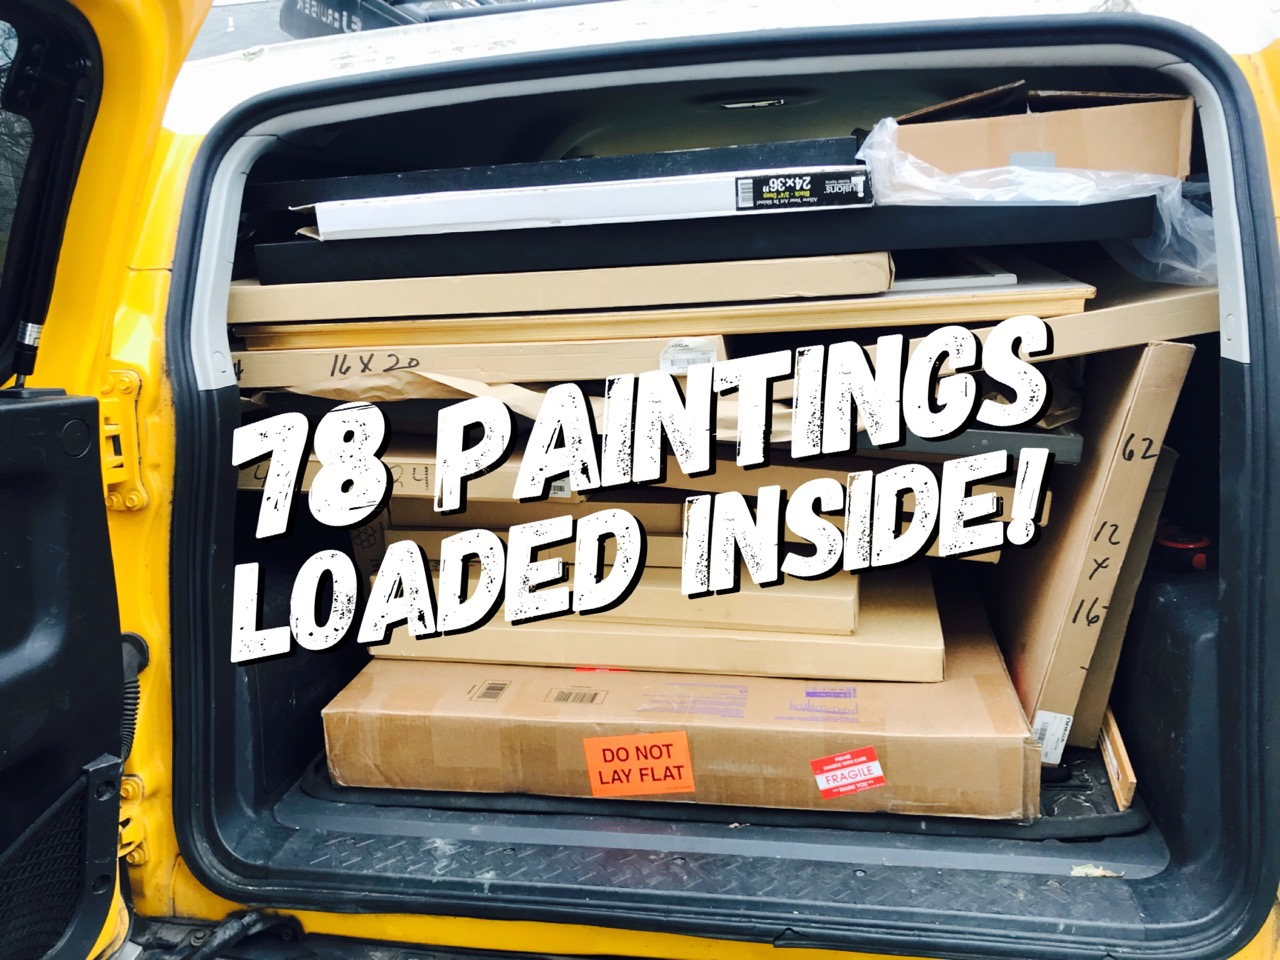 I would later discover I had 79 paintings inside. Whoops!